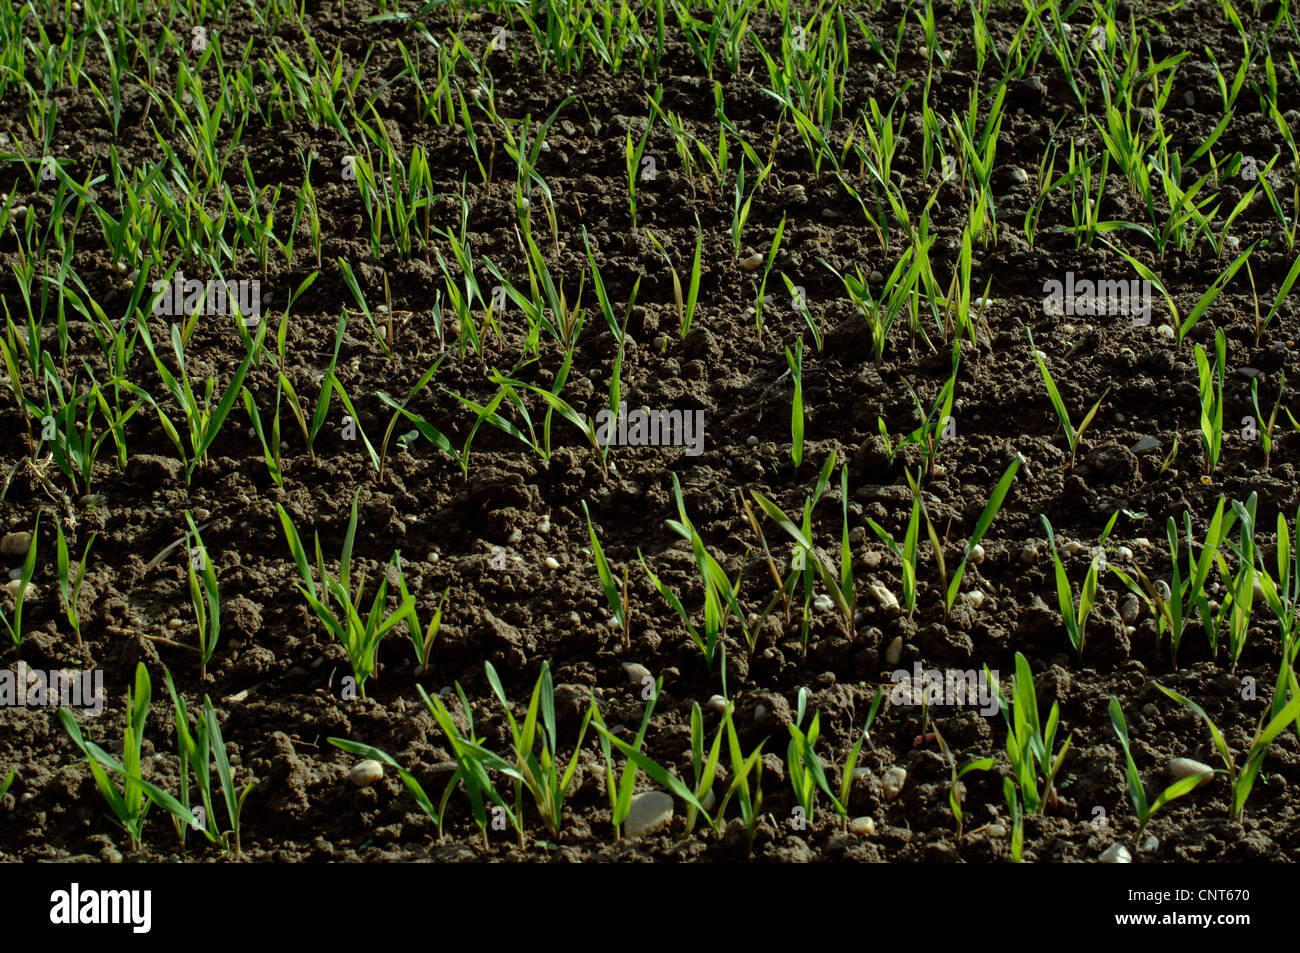 cultivated rye (Secale cereale), seedling on an acre, Germany - Stock Image